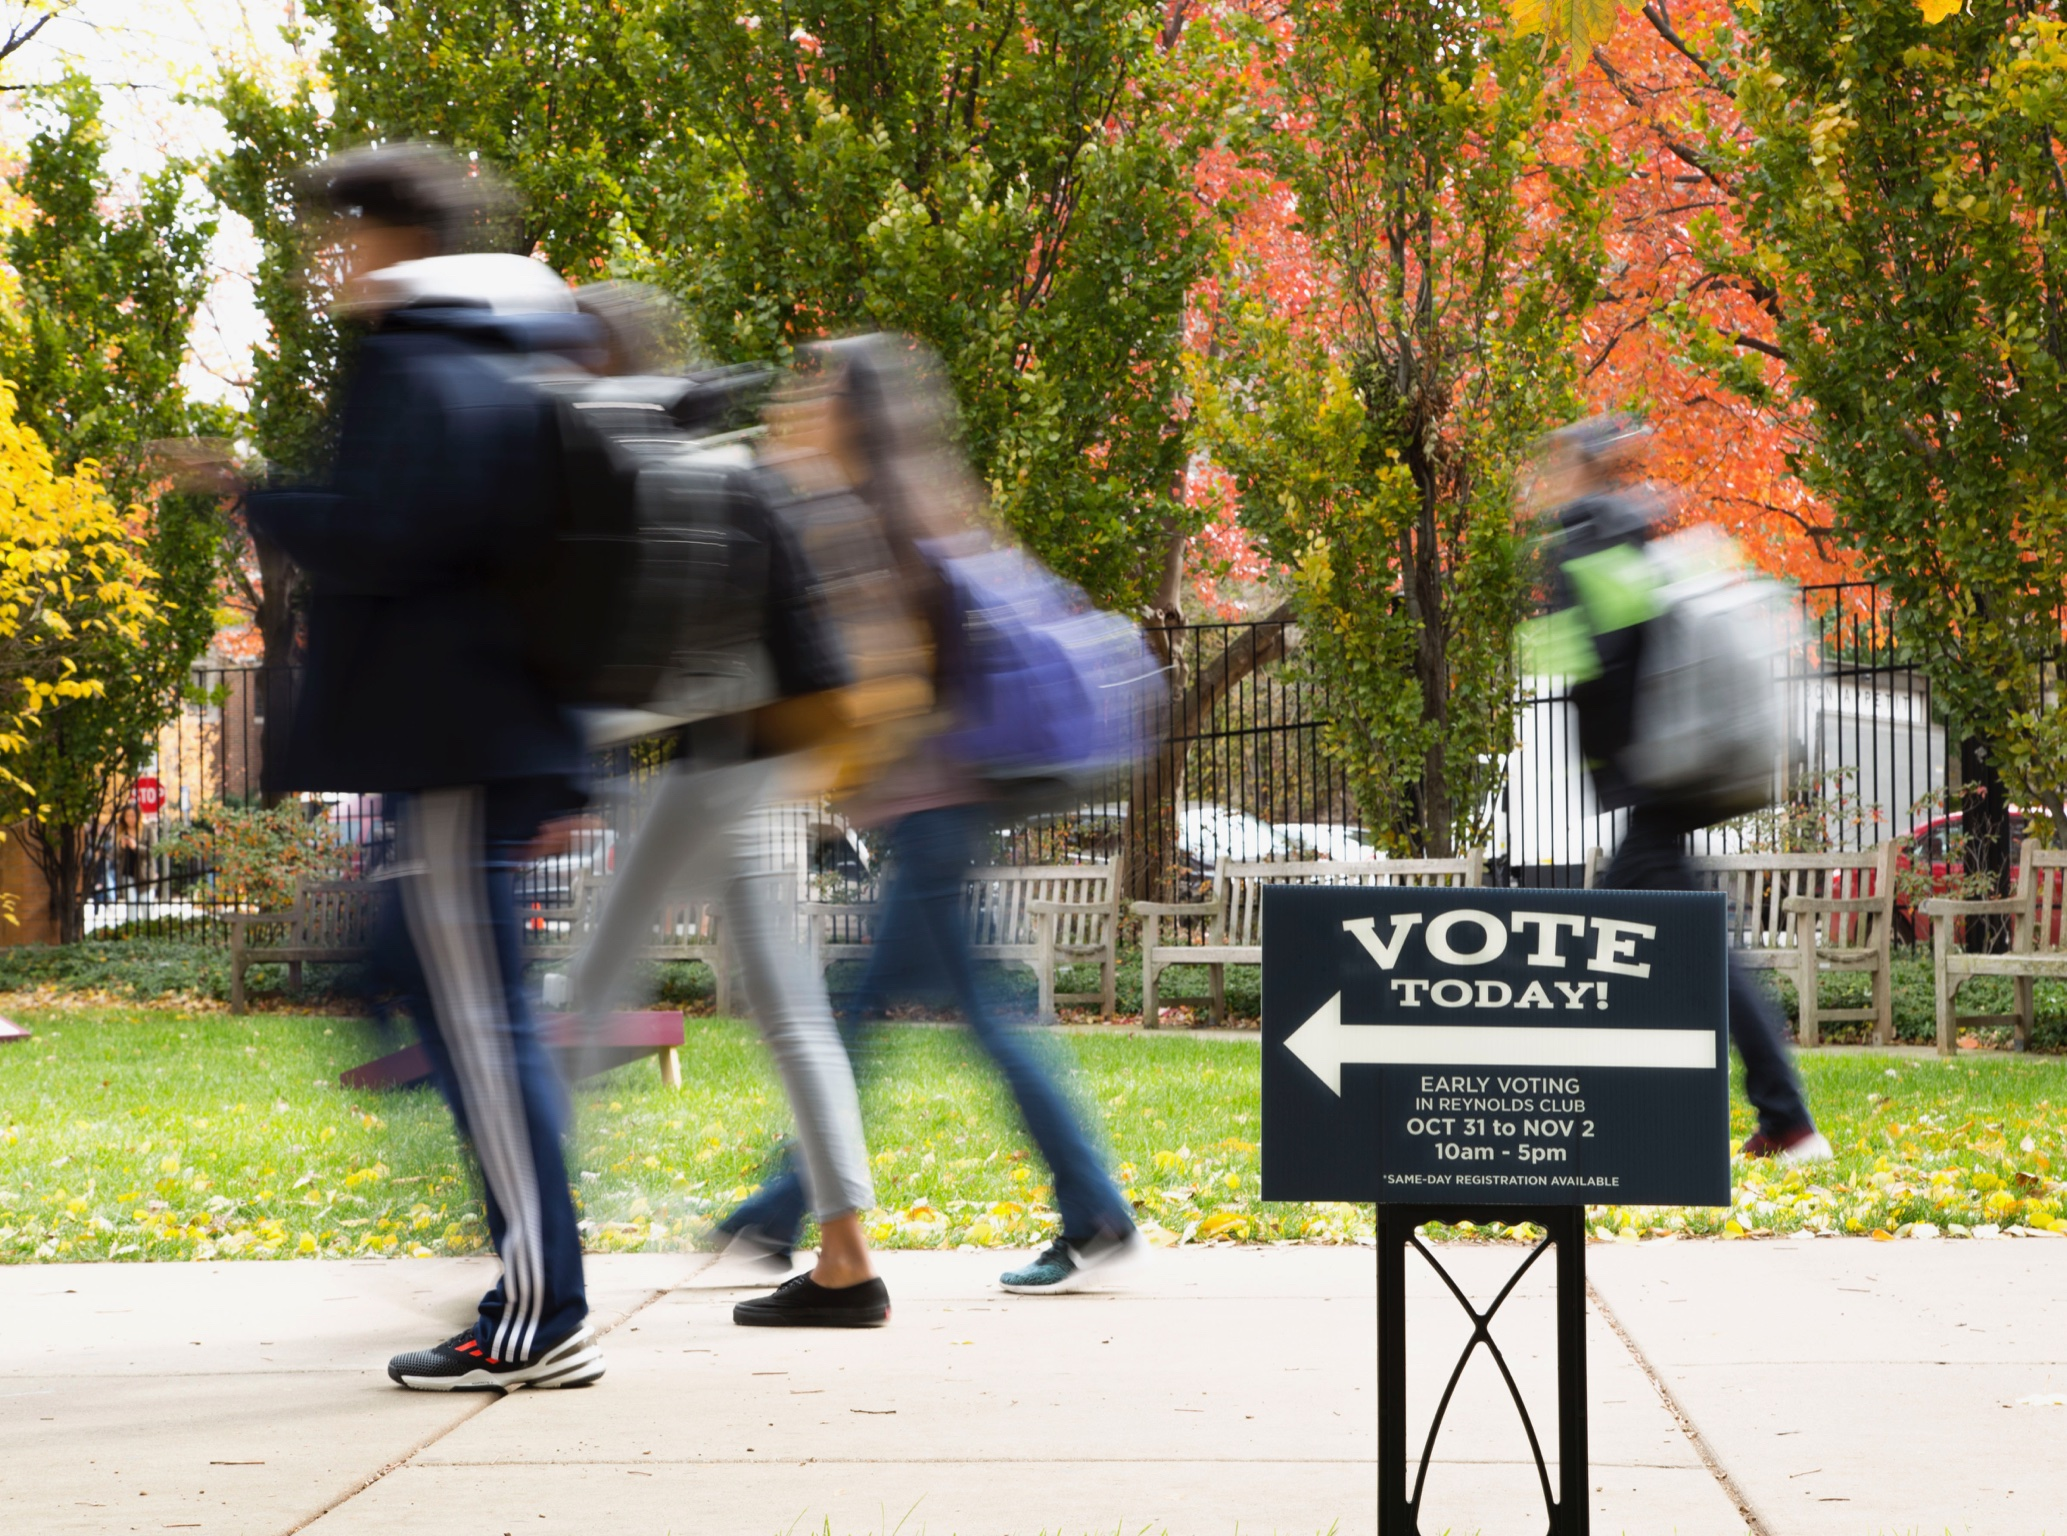 A yard sign points students to UChicago's first-ever early voting location on campus.